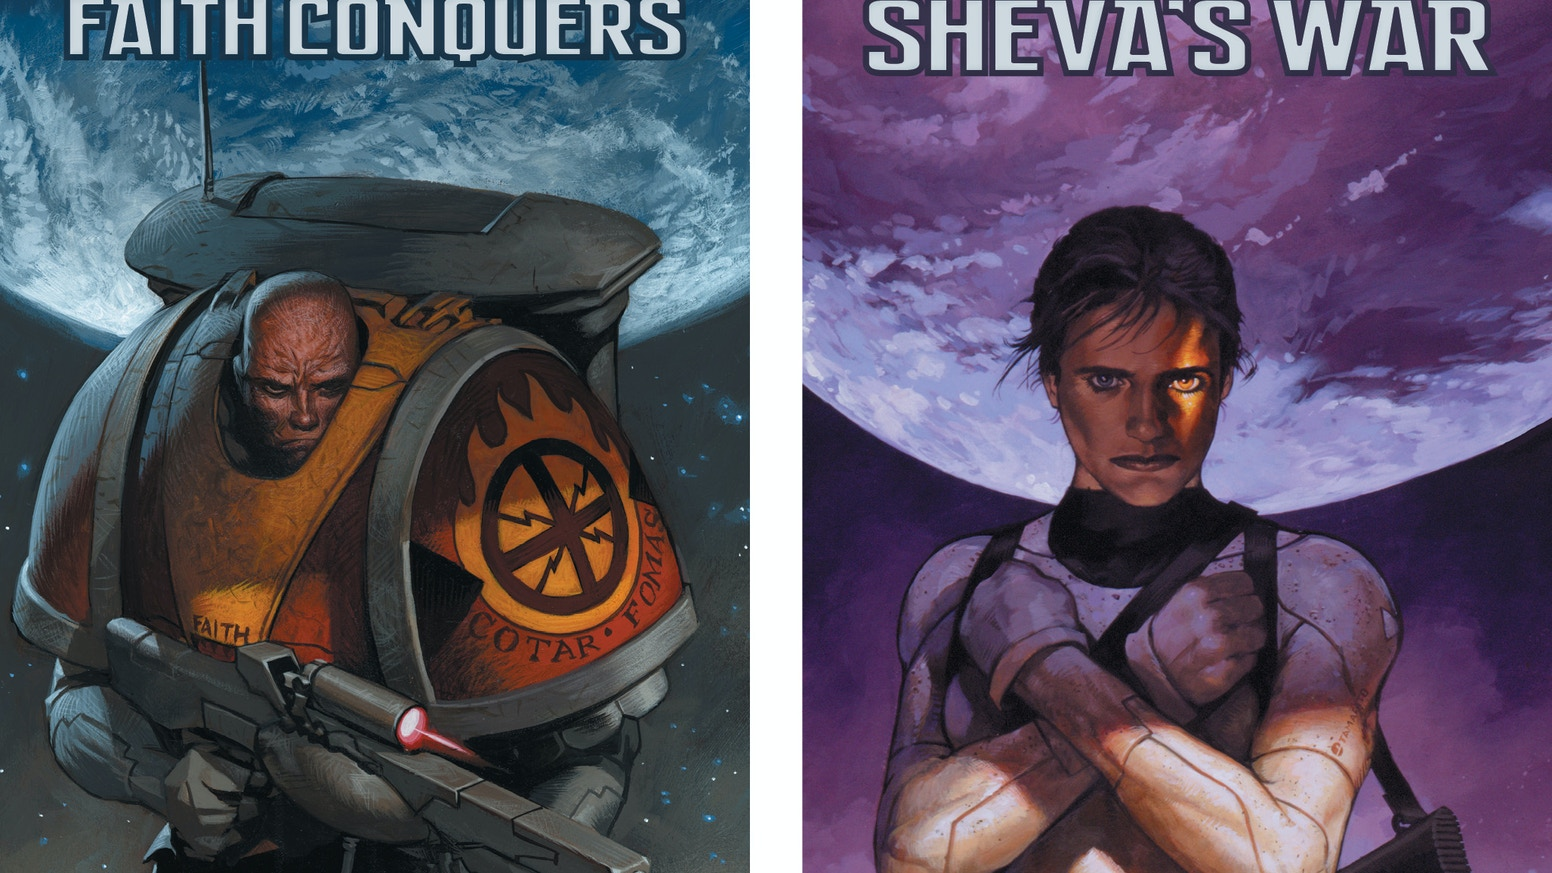 New hardcover editions of the Iron Empires series: Faith Conquers and Sheva's War